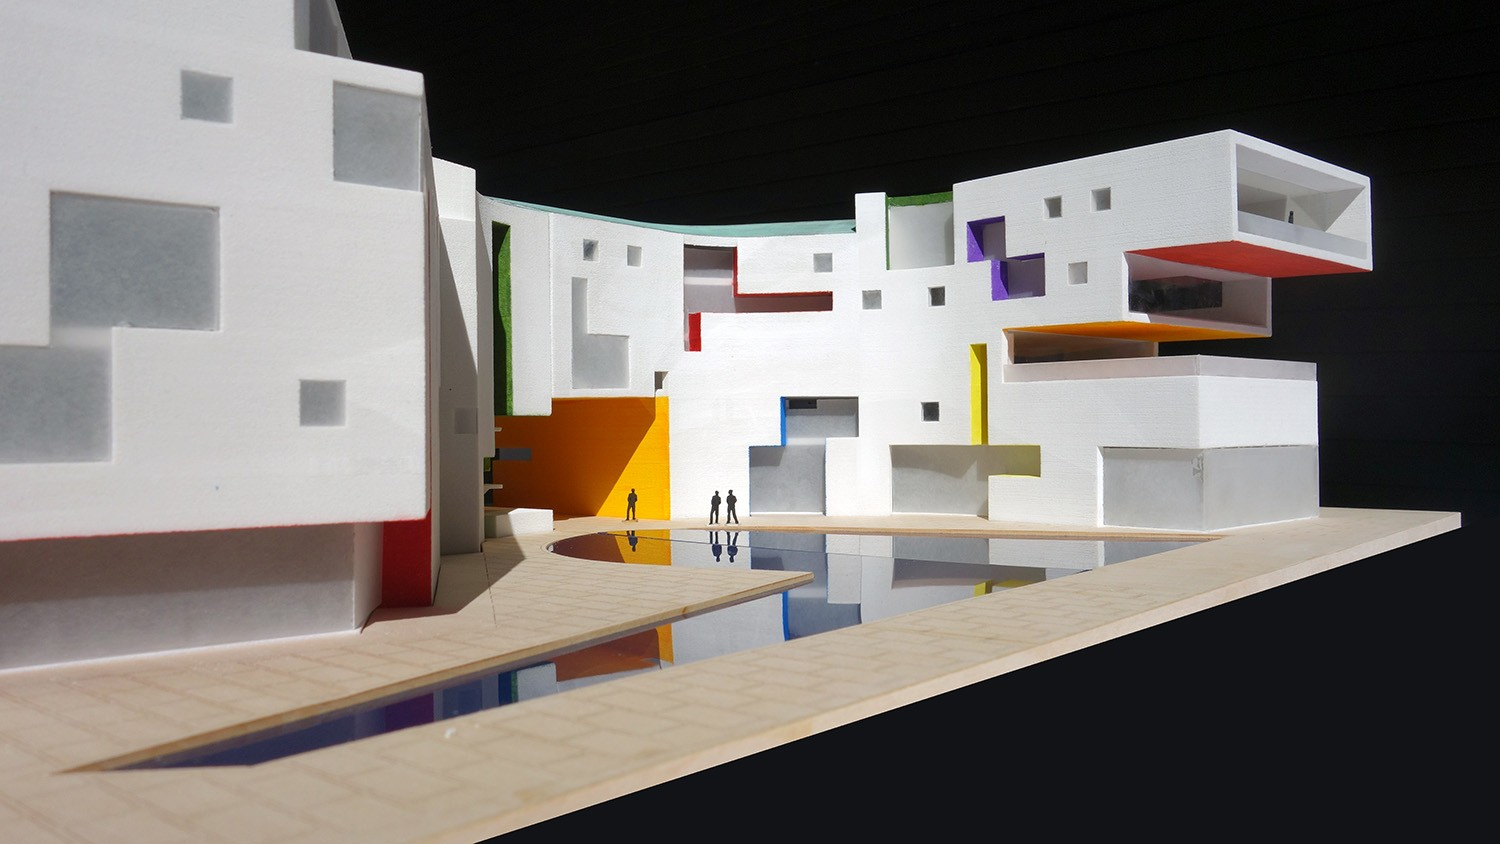 https://s3.us-east-2.amazonaws.com/steven-holl/uploads/projects/project-images/StevenHollArchitects_MGI_SHA-Moscow-Polychromy_WH.jpg